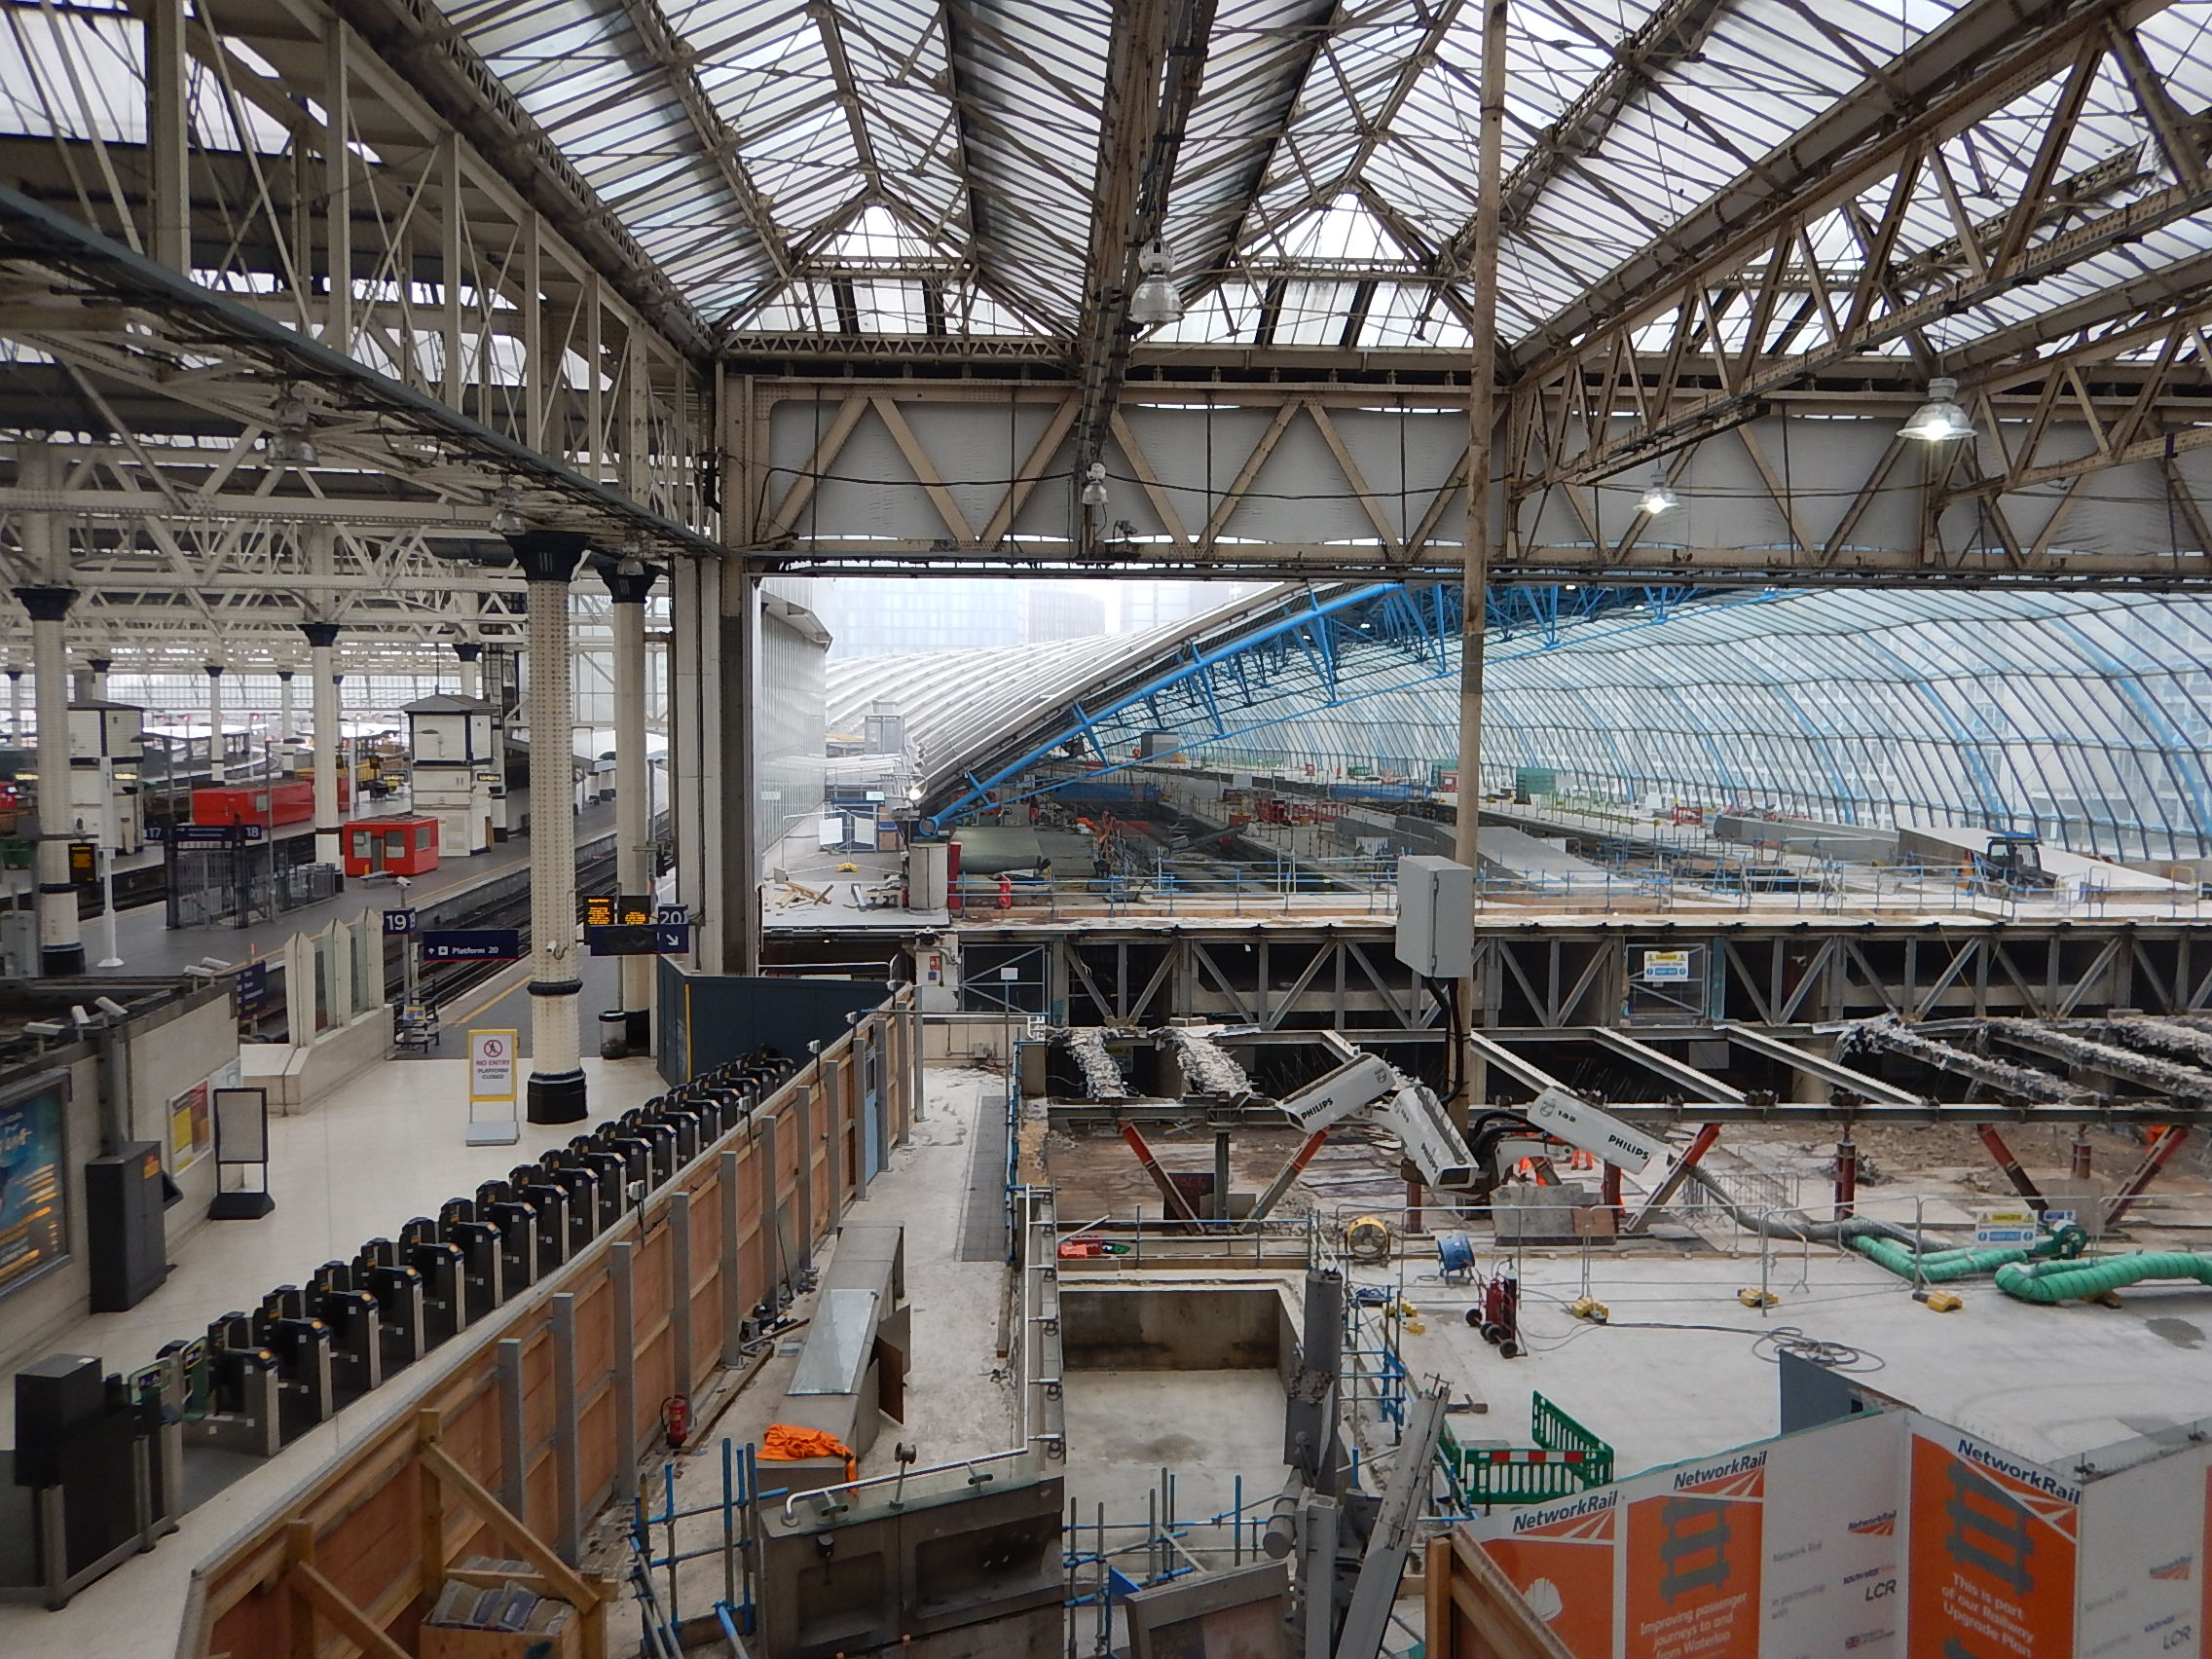 The Eurostar Platforms At Waterloo Station Are Being